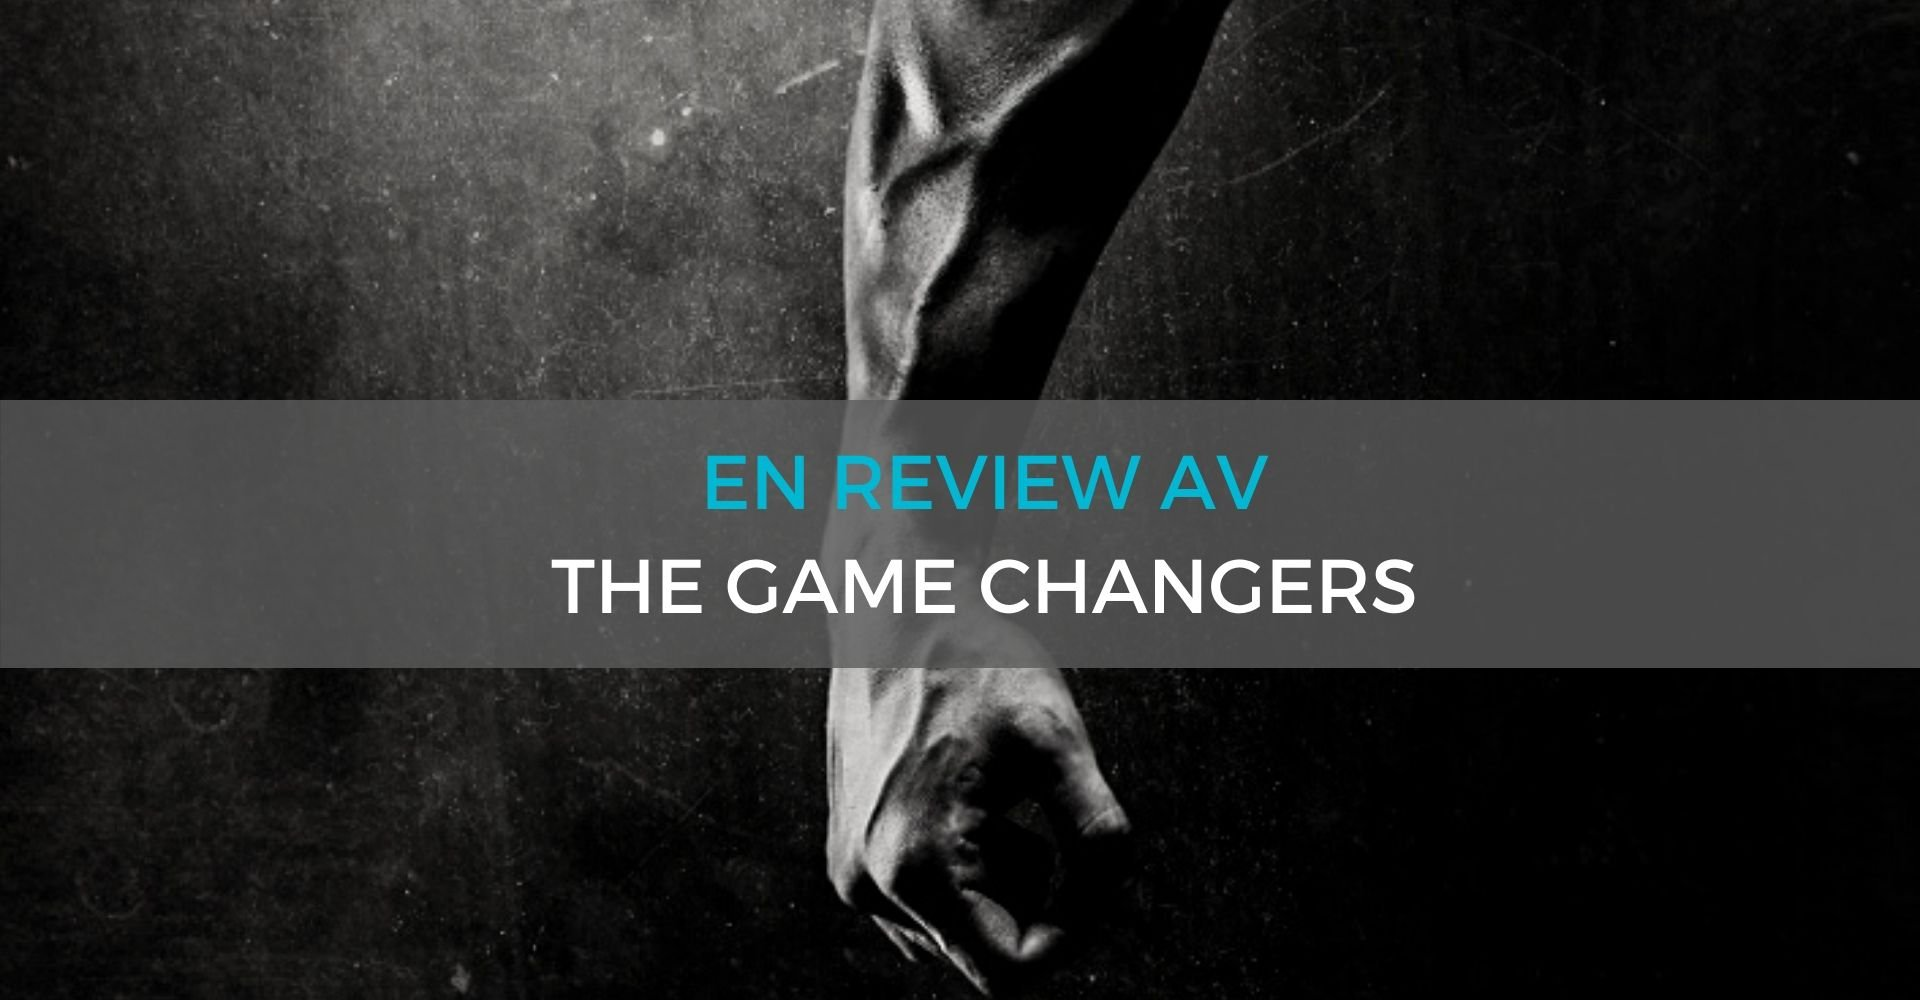 En review av The Game Changers